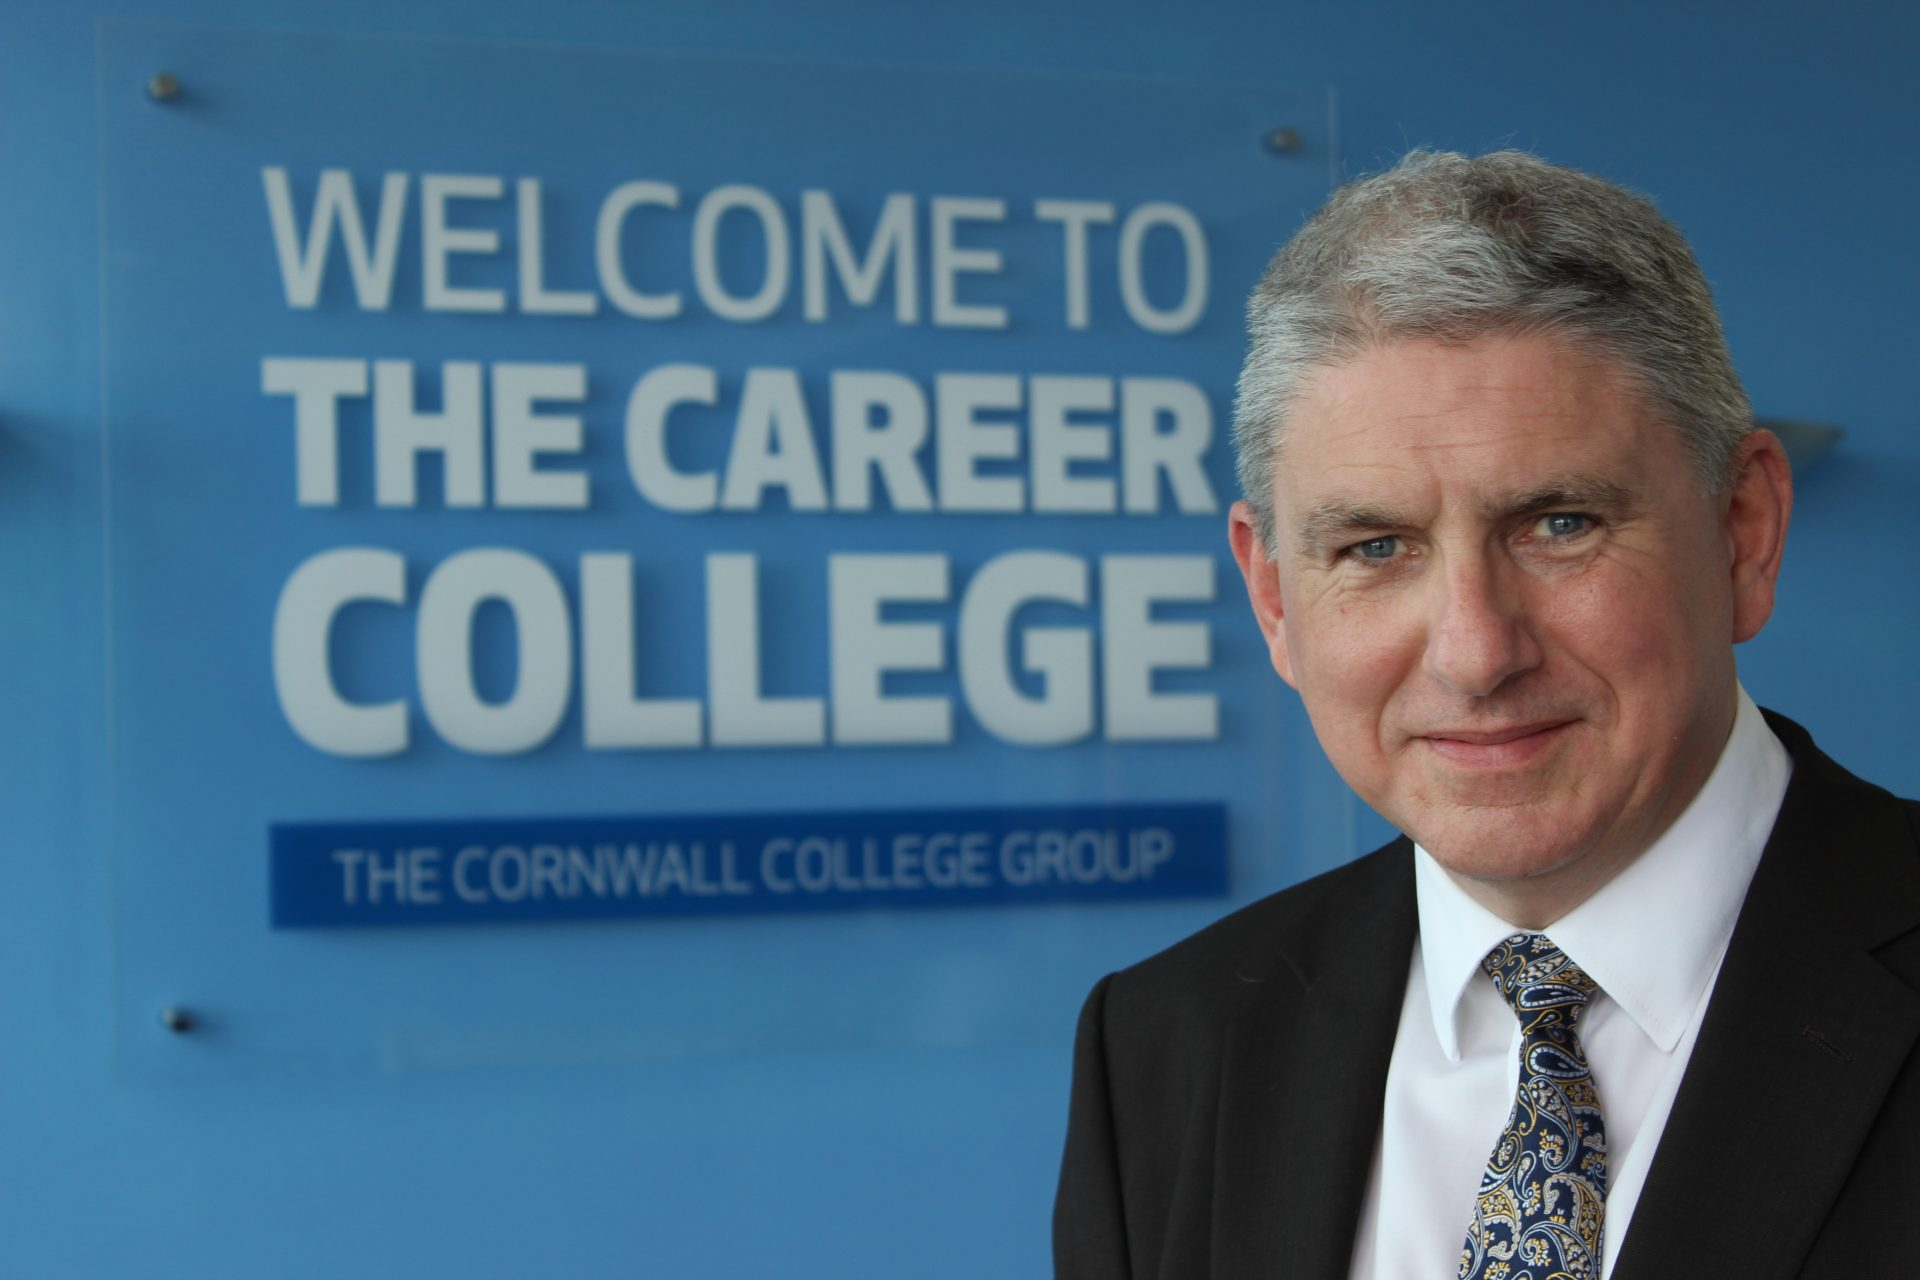 Ofsted awards The Cornwall College Group highest judgement – significant progress – followingmonitoring visit